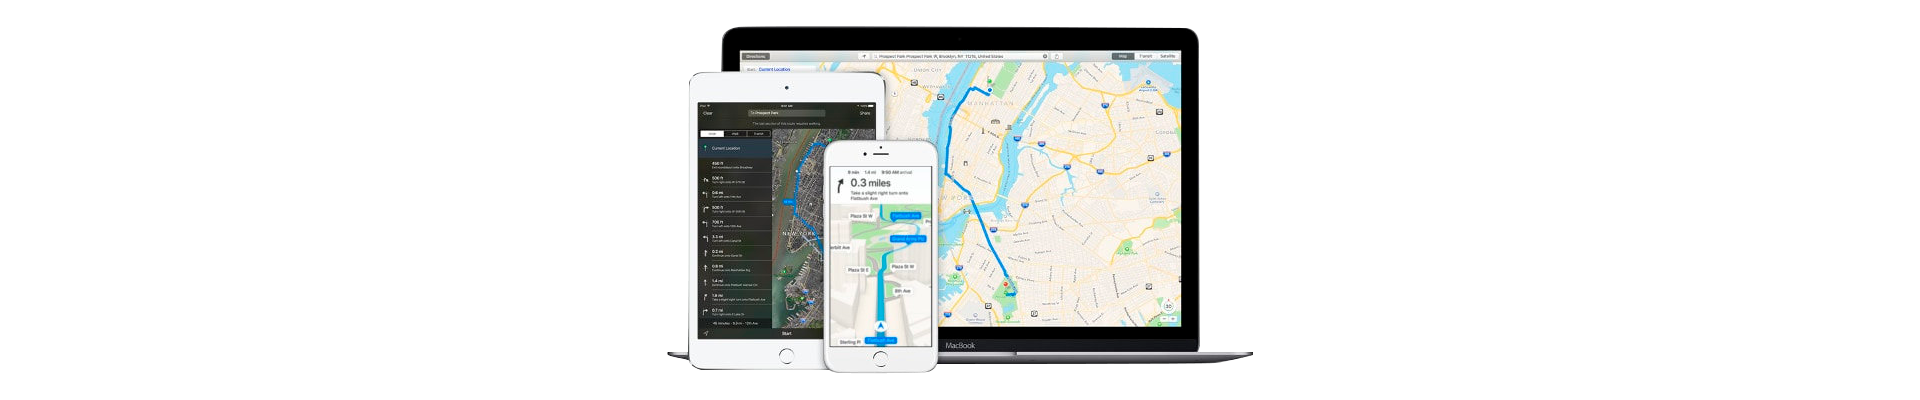 Presencia de tu negocio en Apple Maps